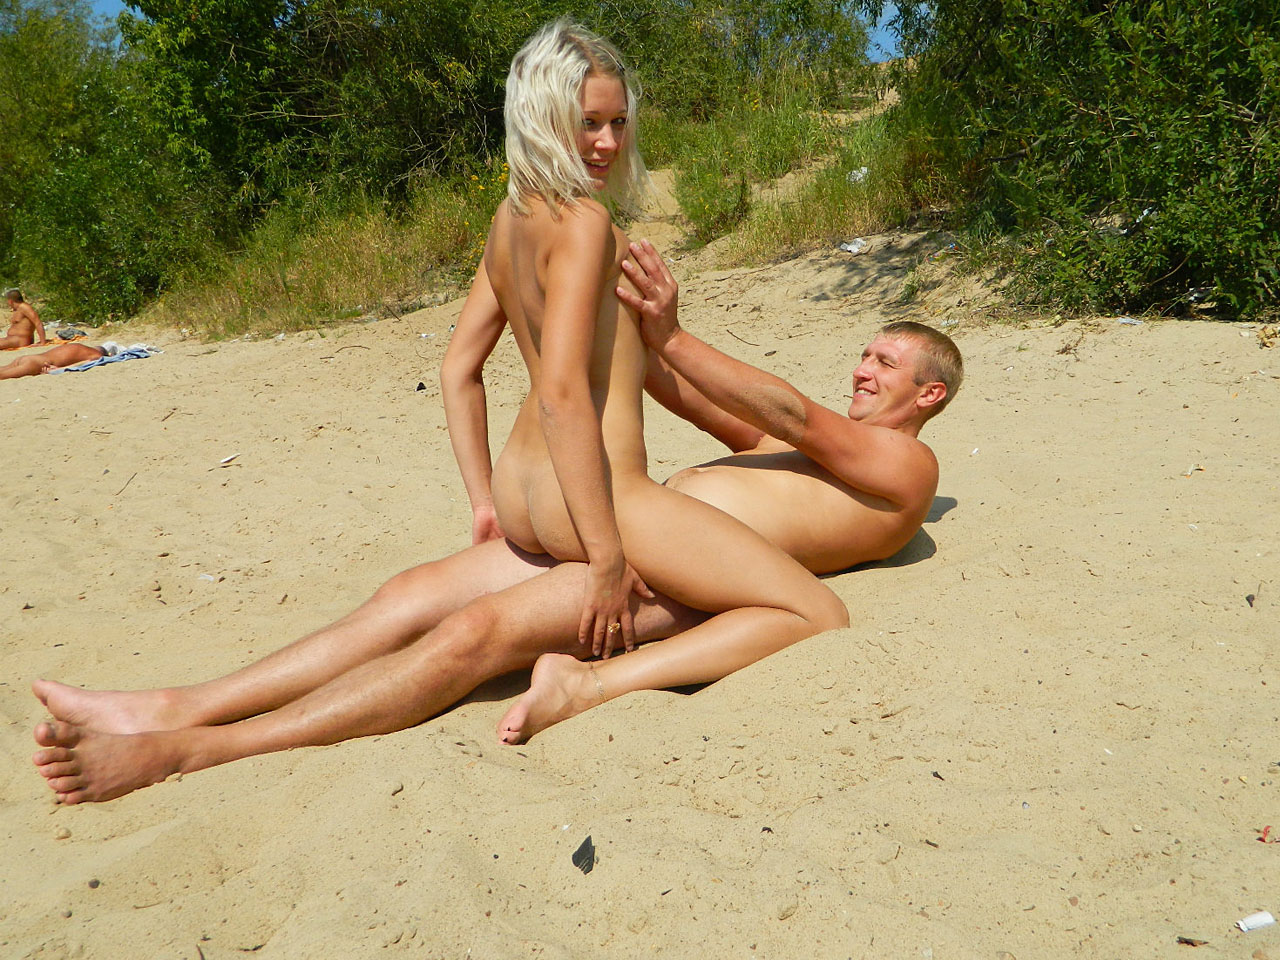 Valuable Beach porn nudist senseless